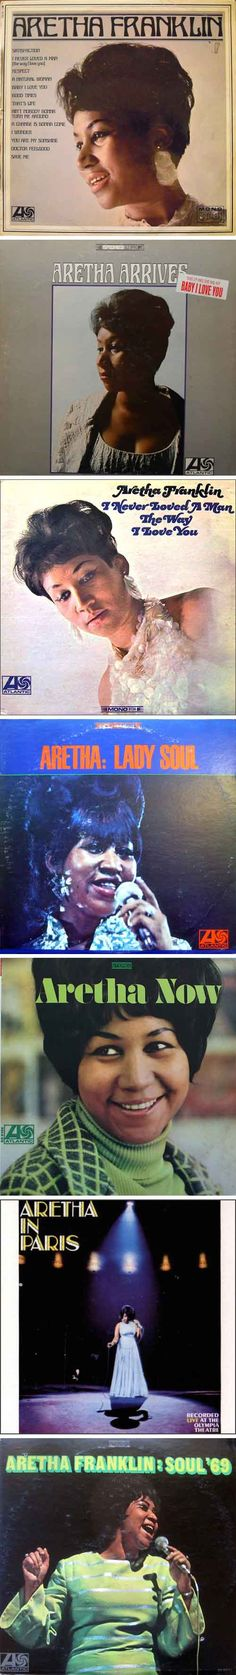 Aretha Franklin's classic 1960s Atlantic albums (from top): Aretha Franklin (1967), Aretha Arrives (1967), I Never Loved a Man the Way I Love You (1967), Lady Soul (1968), Aretha Now (1968), Aretha in Paris (1968), Soul '69 (1969)